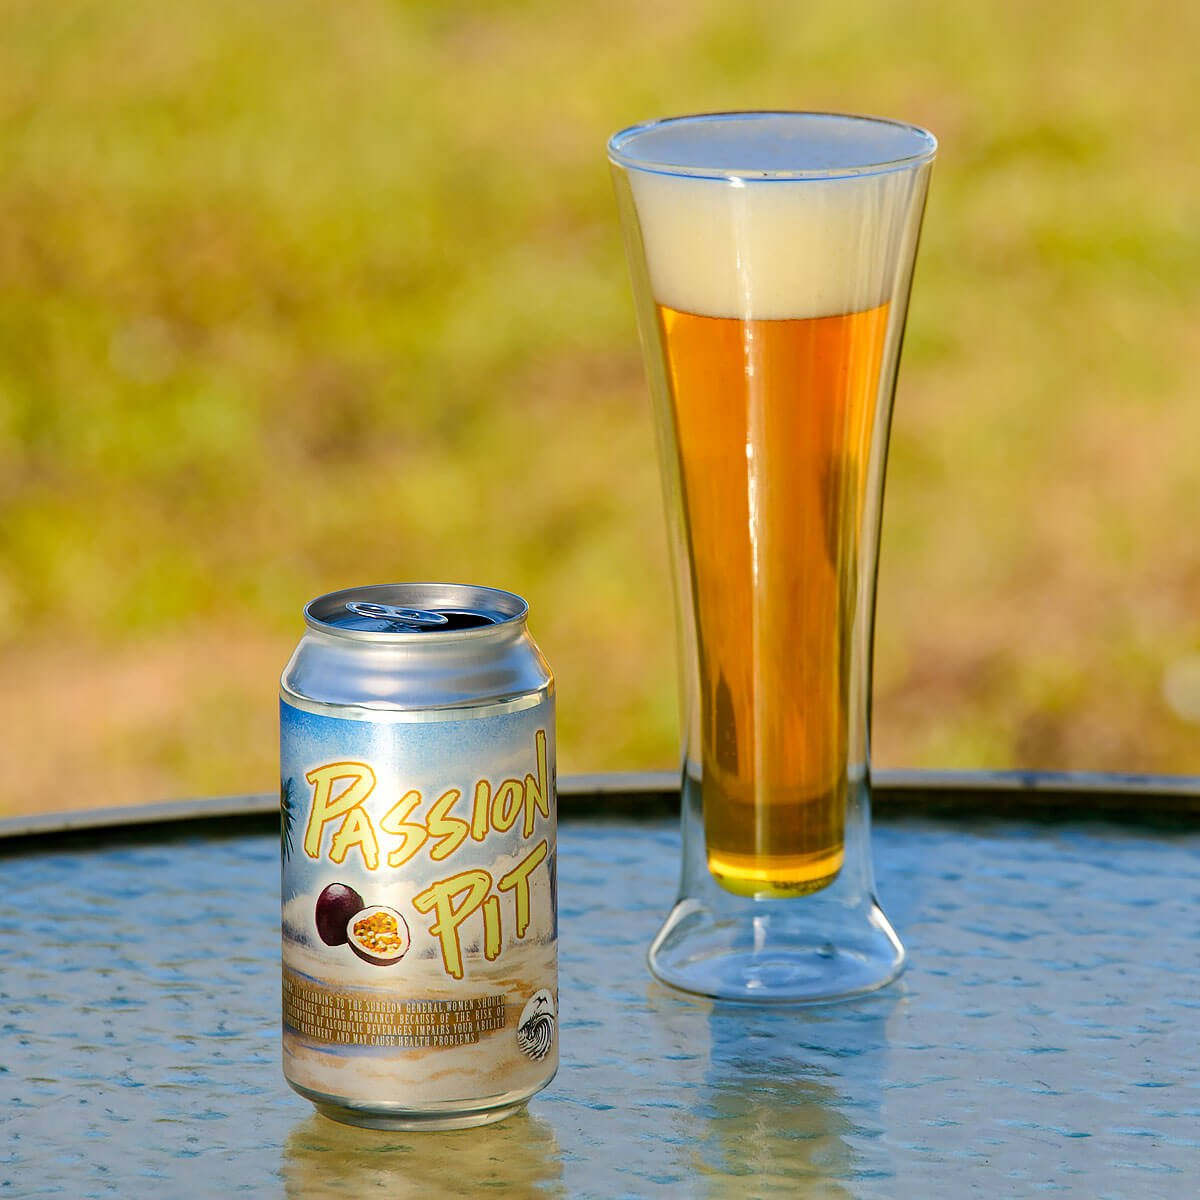 Passion Pit, an American Blonde Ale by SaltWater Brewery